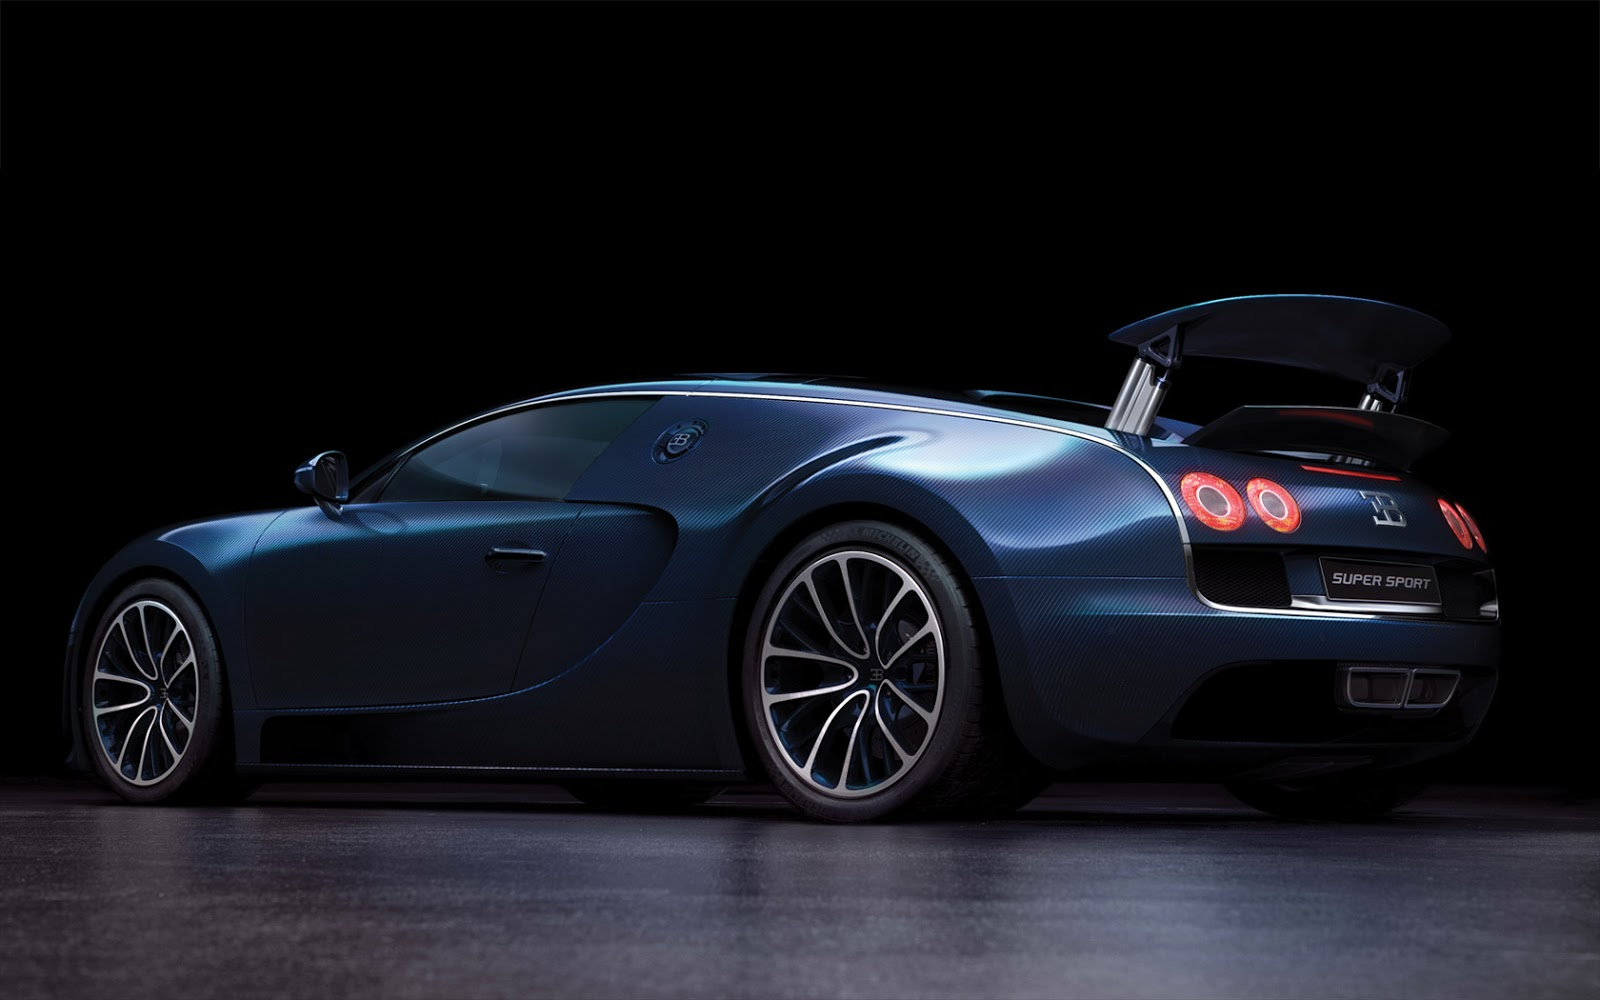 HD Wallpapers BUGATTI VEYRON HD WALLPAPERS 1600x1000